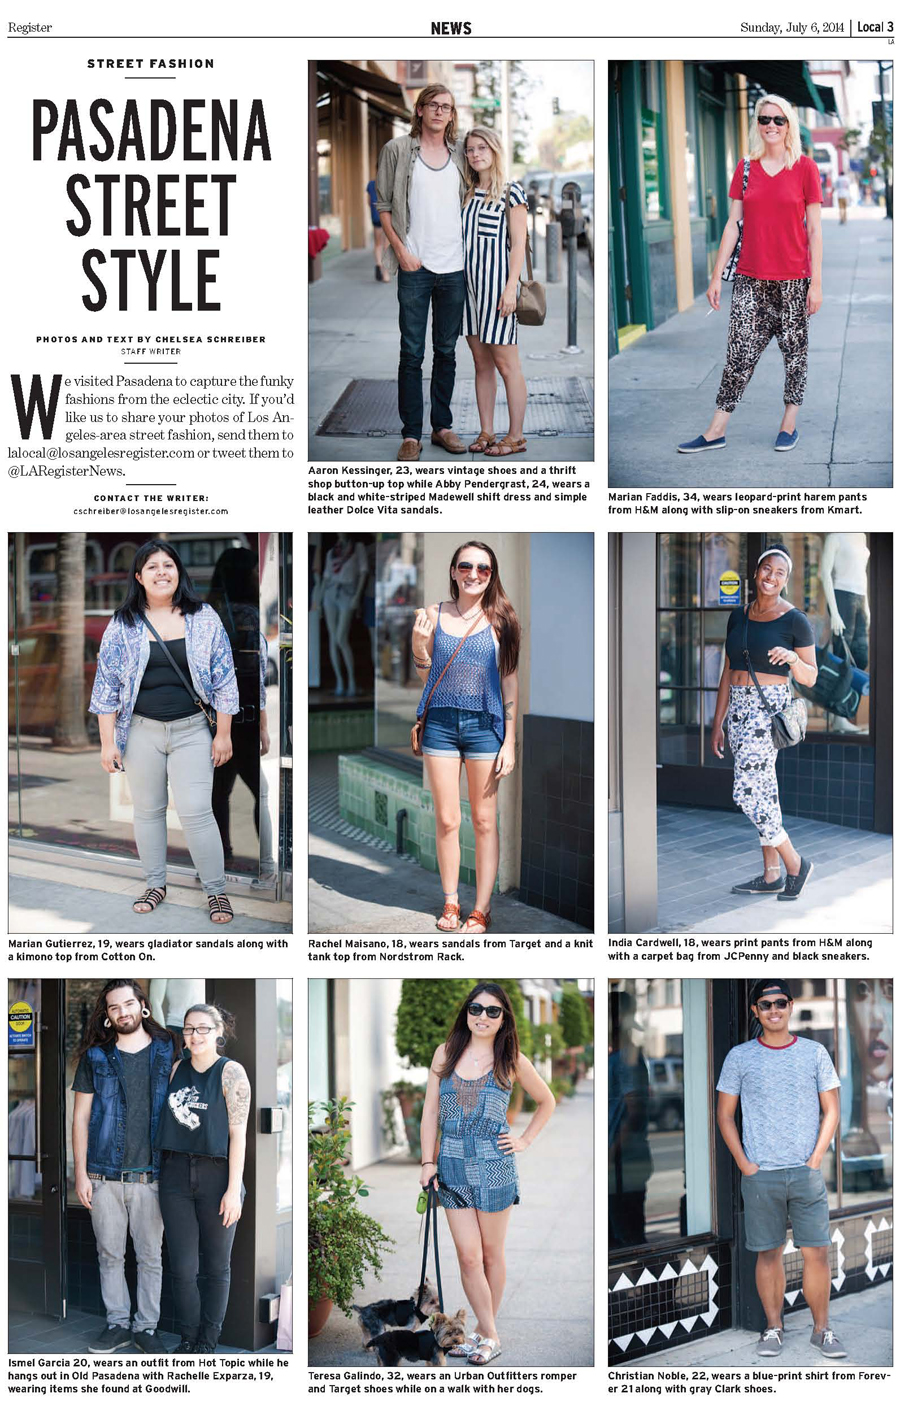 Los Angeles Register Street Style in Pasadena